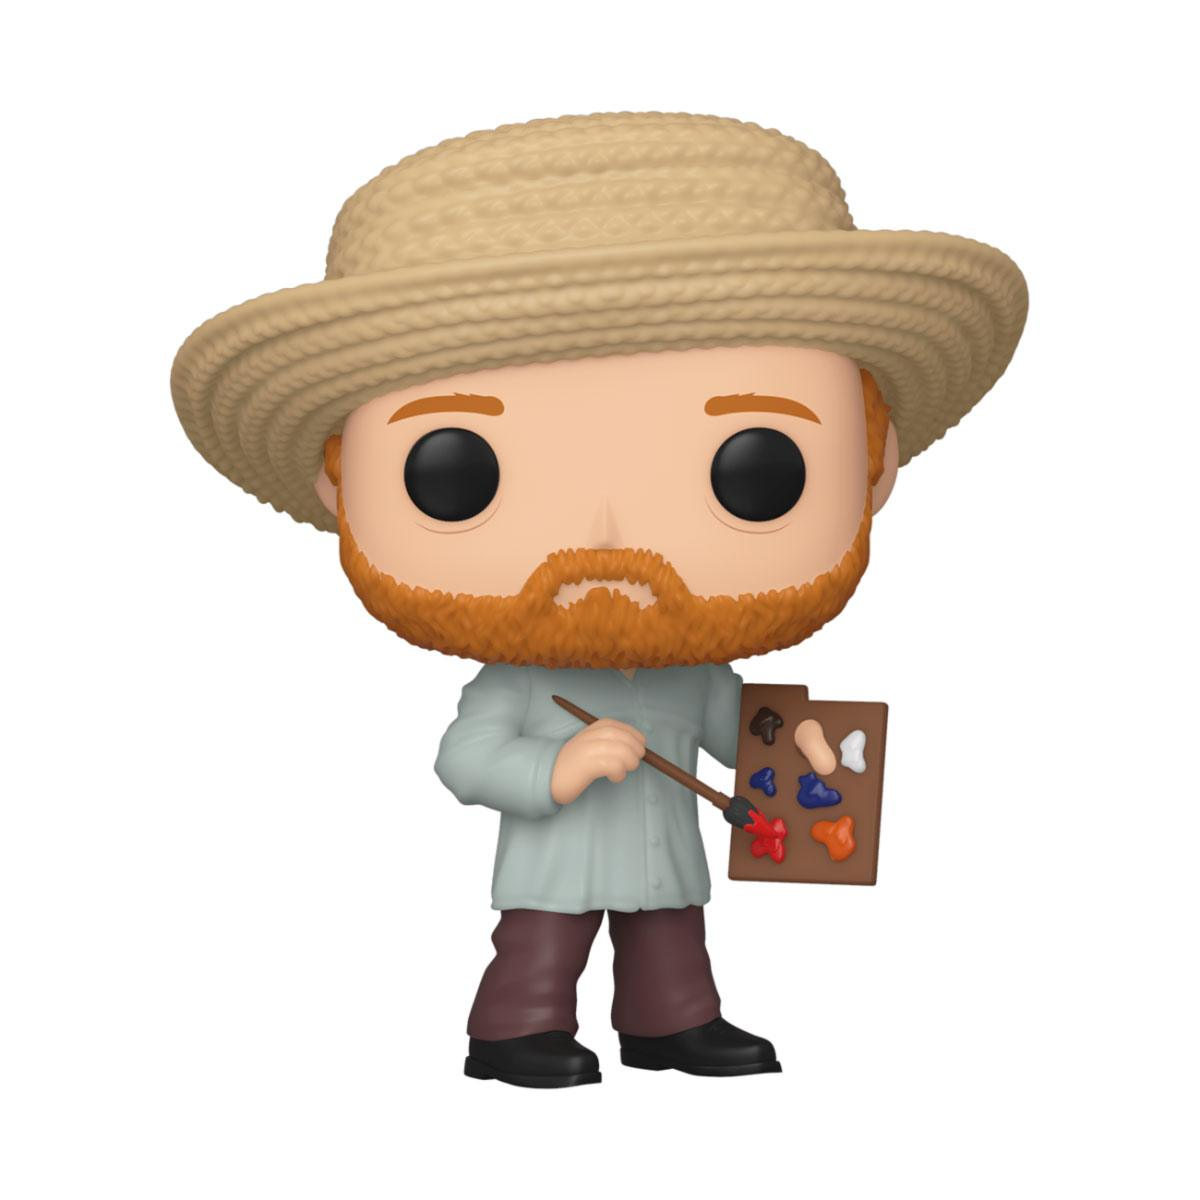 Vincent van Gogh POP! Artists Vinyl Figure 9 cm